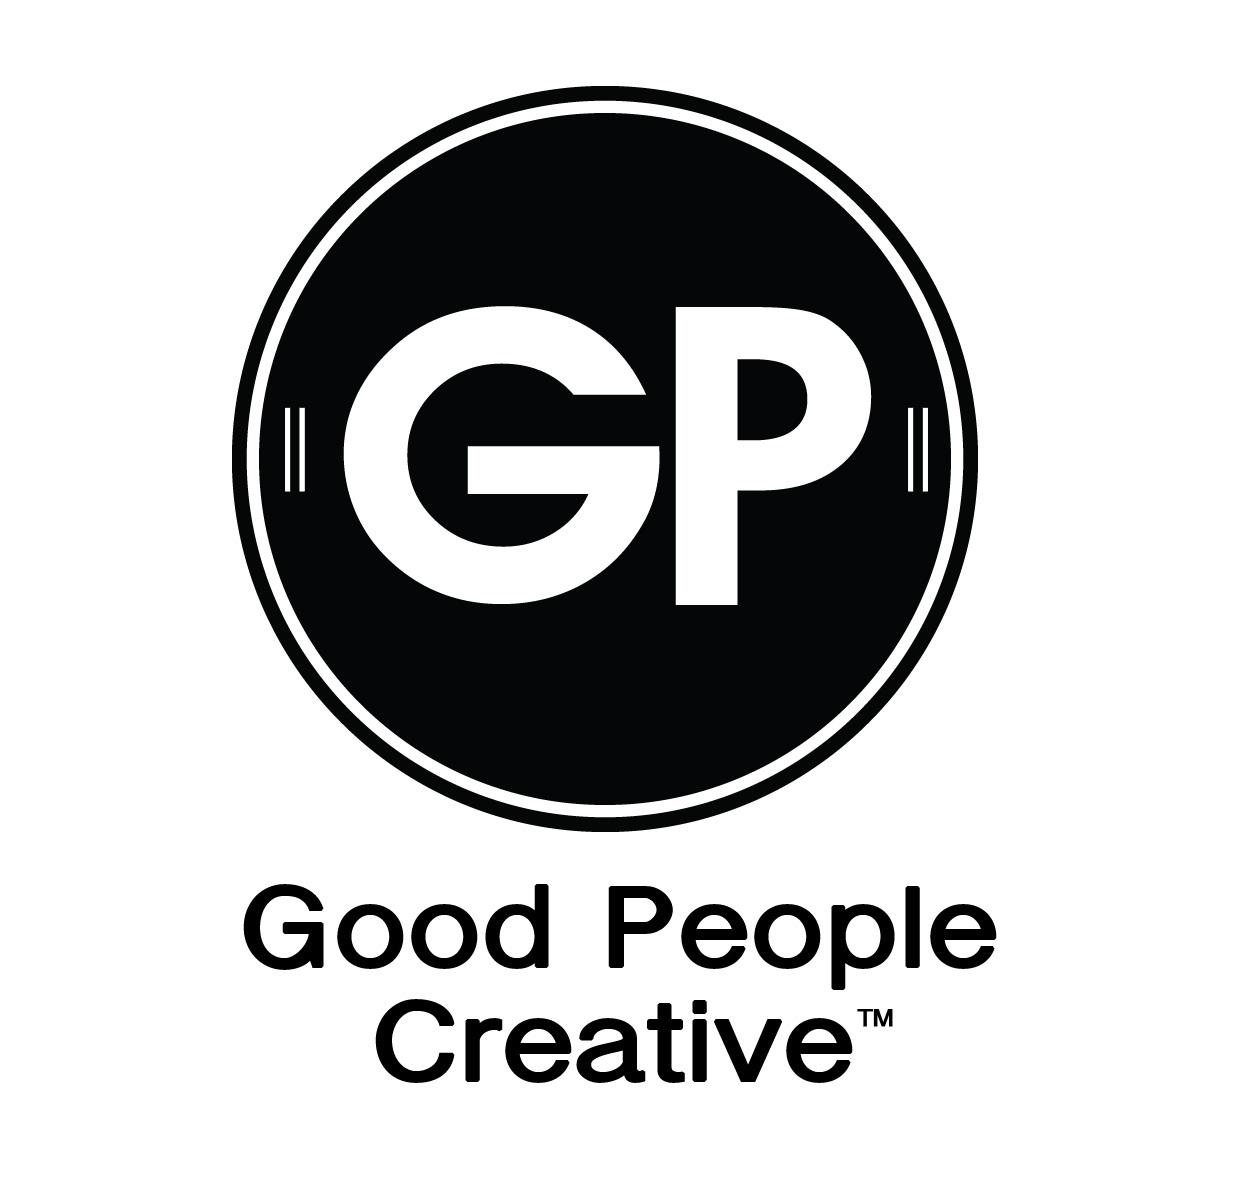 Good People Creative Finishes 2013 Strong